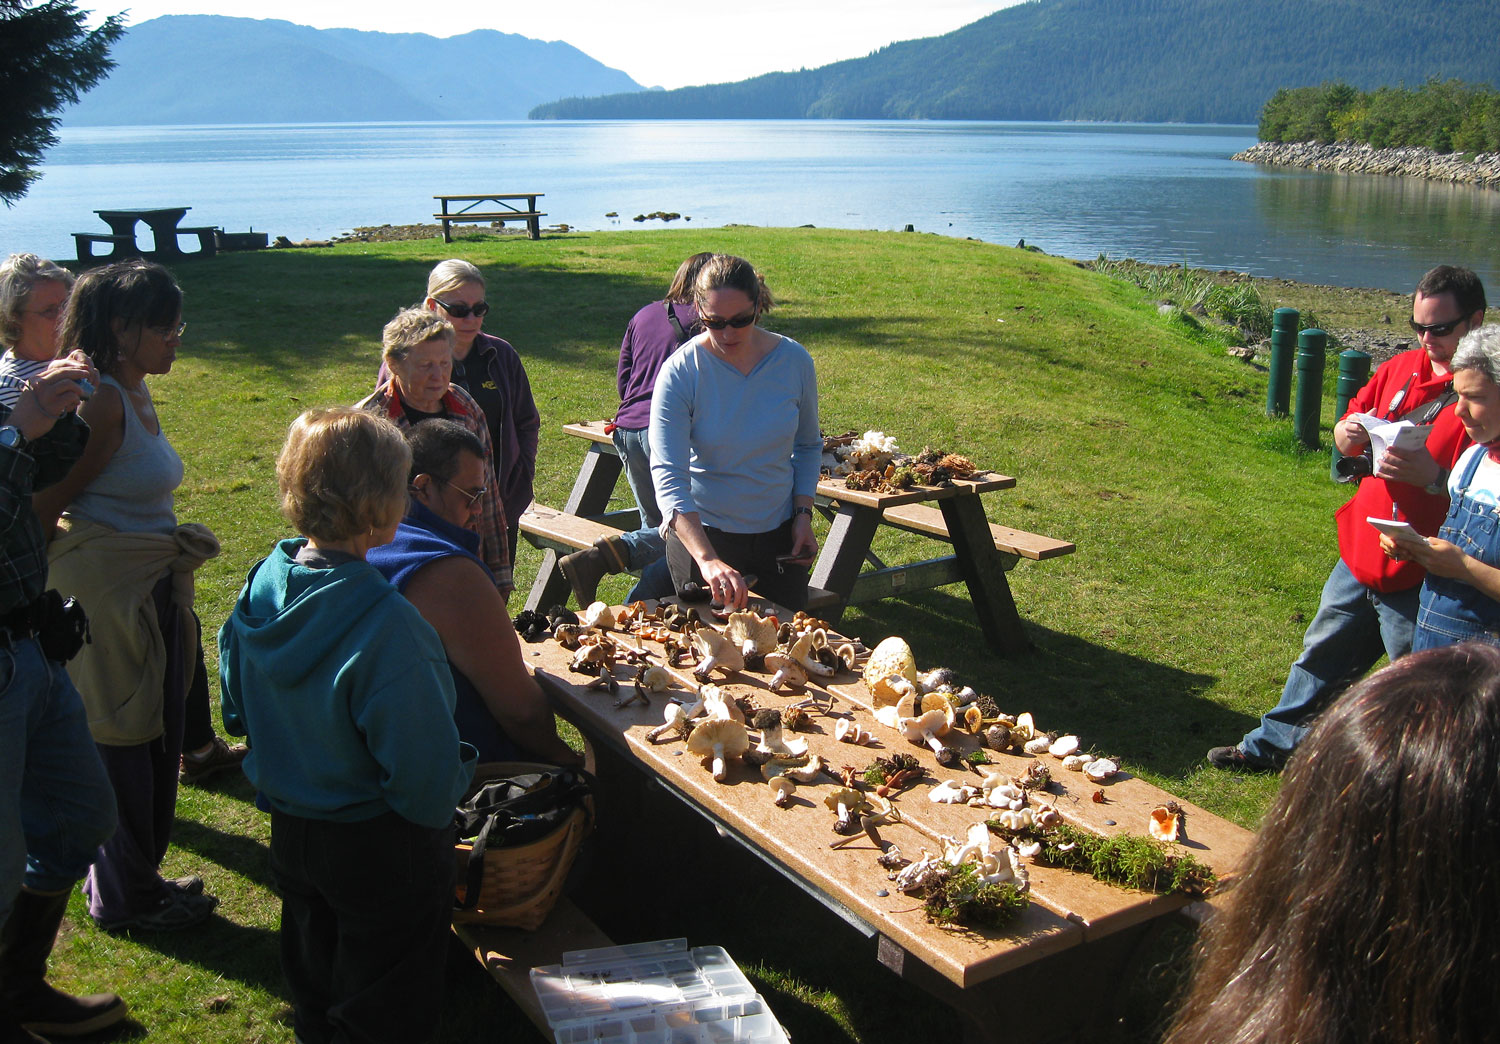 Kate Mohatt, mycologist and Chugach National Forest ecologist, looking over a table of mushrooms with workshop participants.